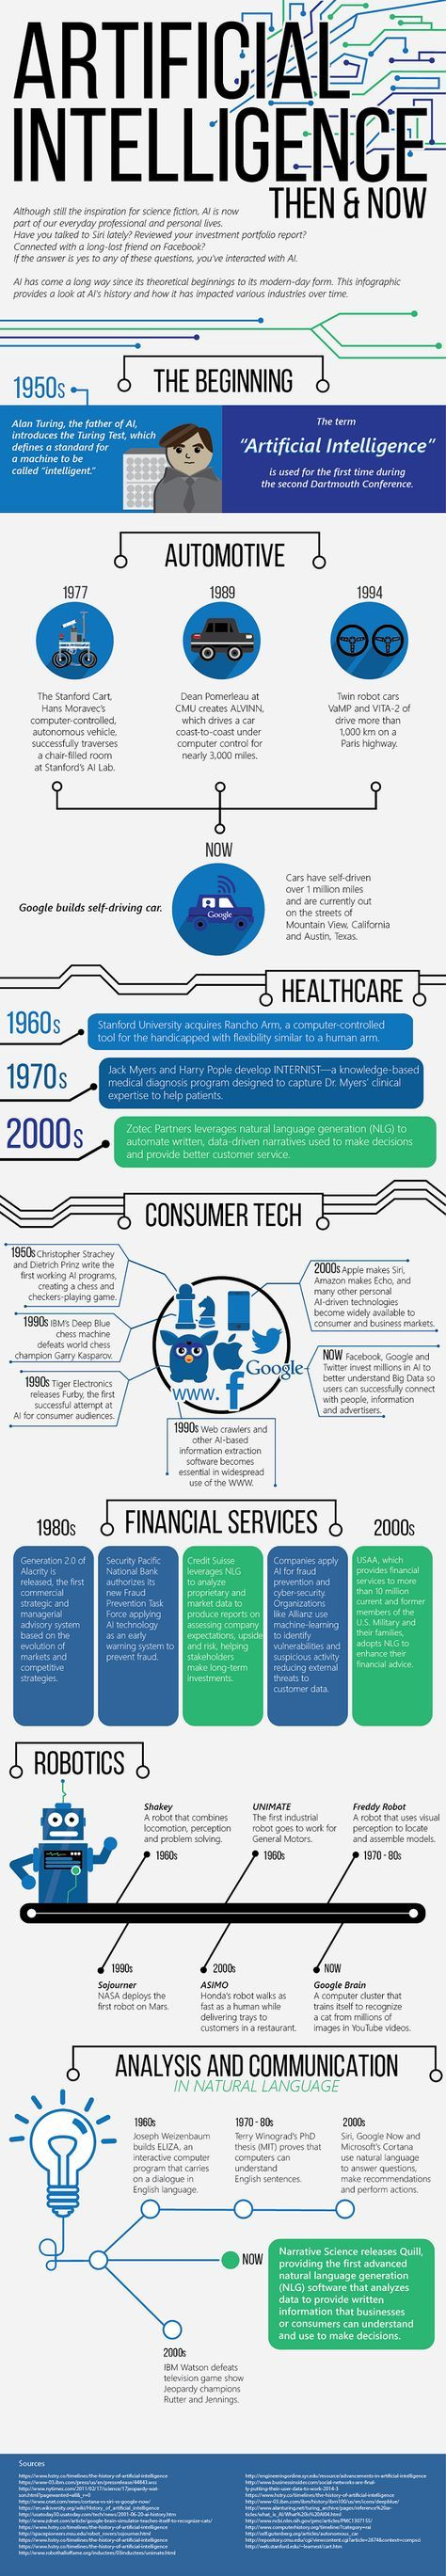 Ai Then Vs Now Infographic By Narrative Science Skin Care Myths Infographic Skin Care